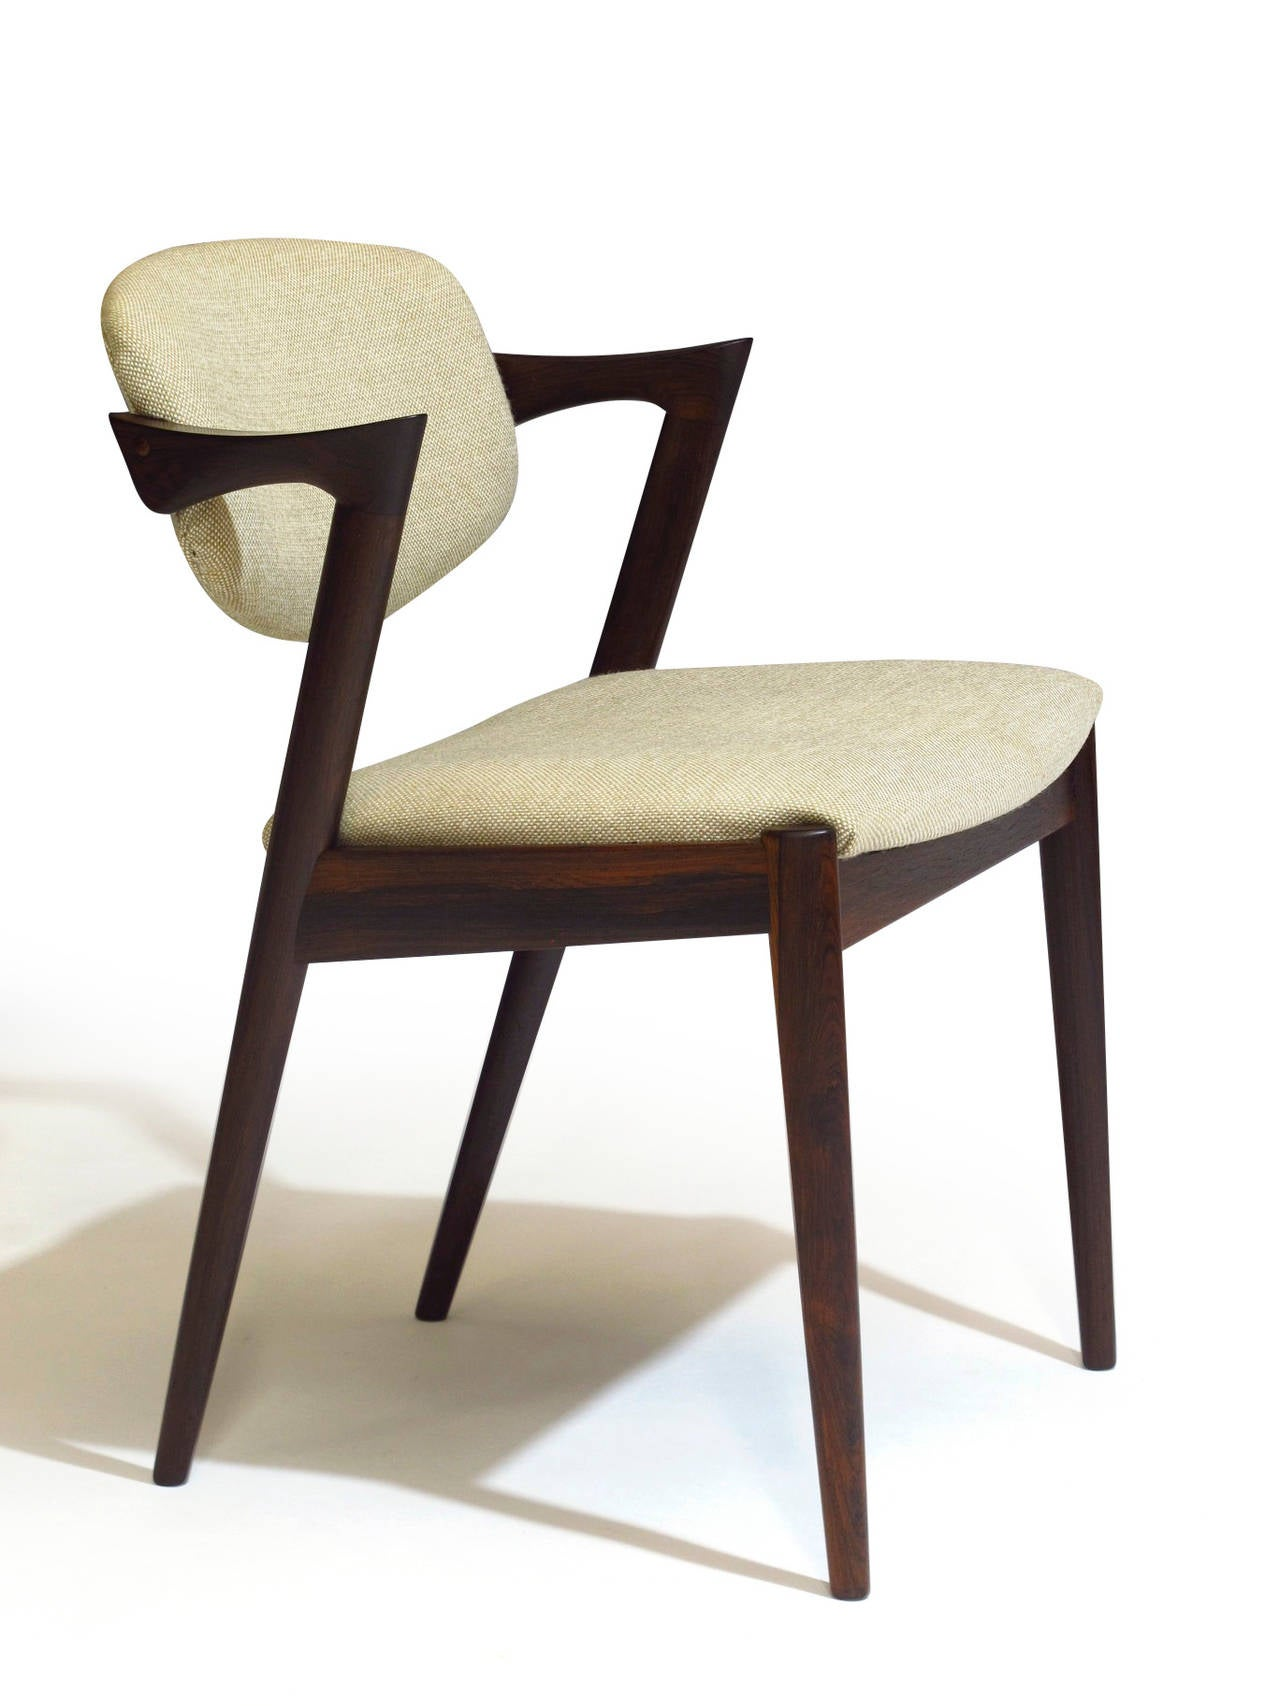 Six rosewood kai kristiansen danish dining chairs 14 available at 1stdibs - Kai kristiansen chairs ...